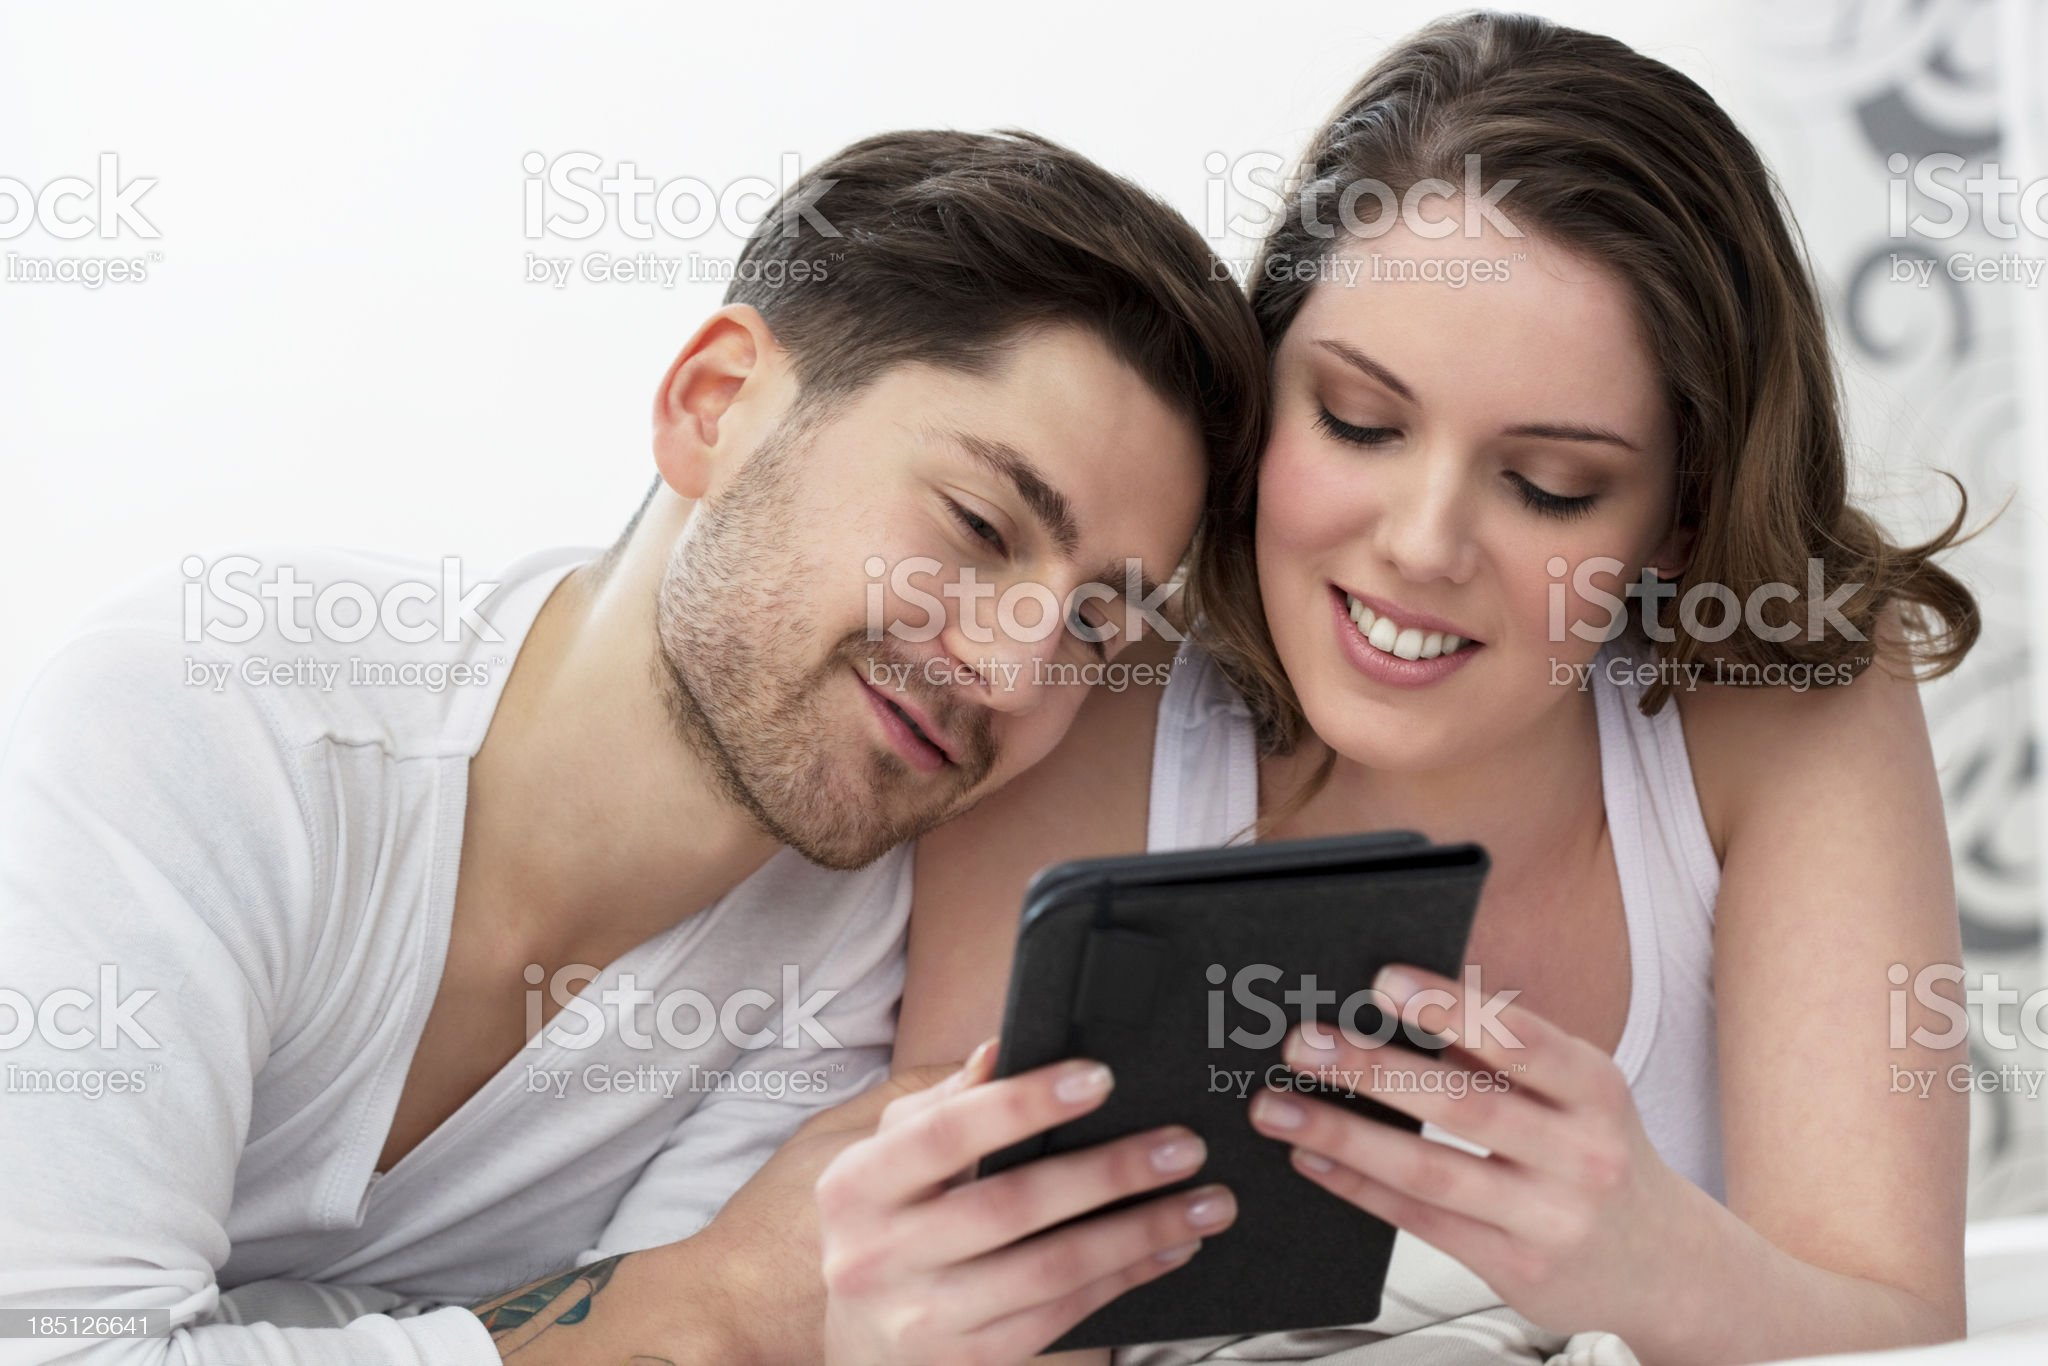 Couple Reading a Book on an E-Reader royalty-free stock photo